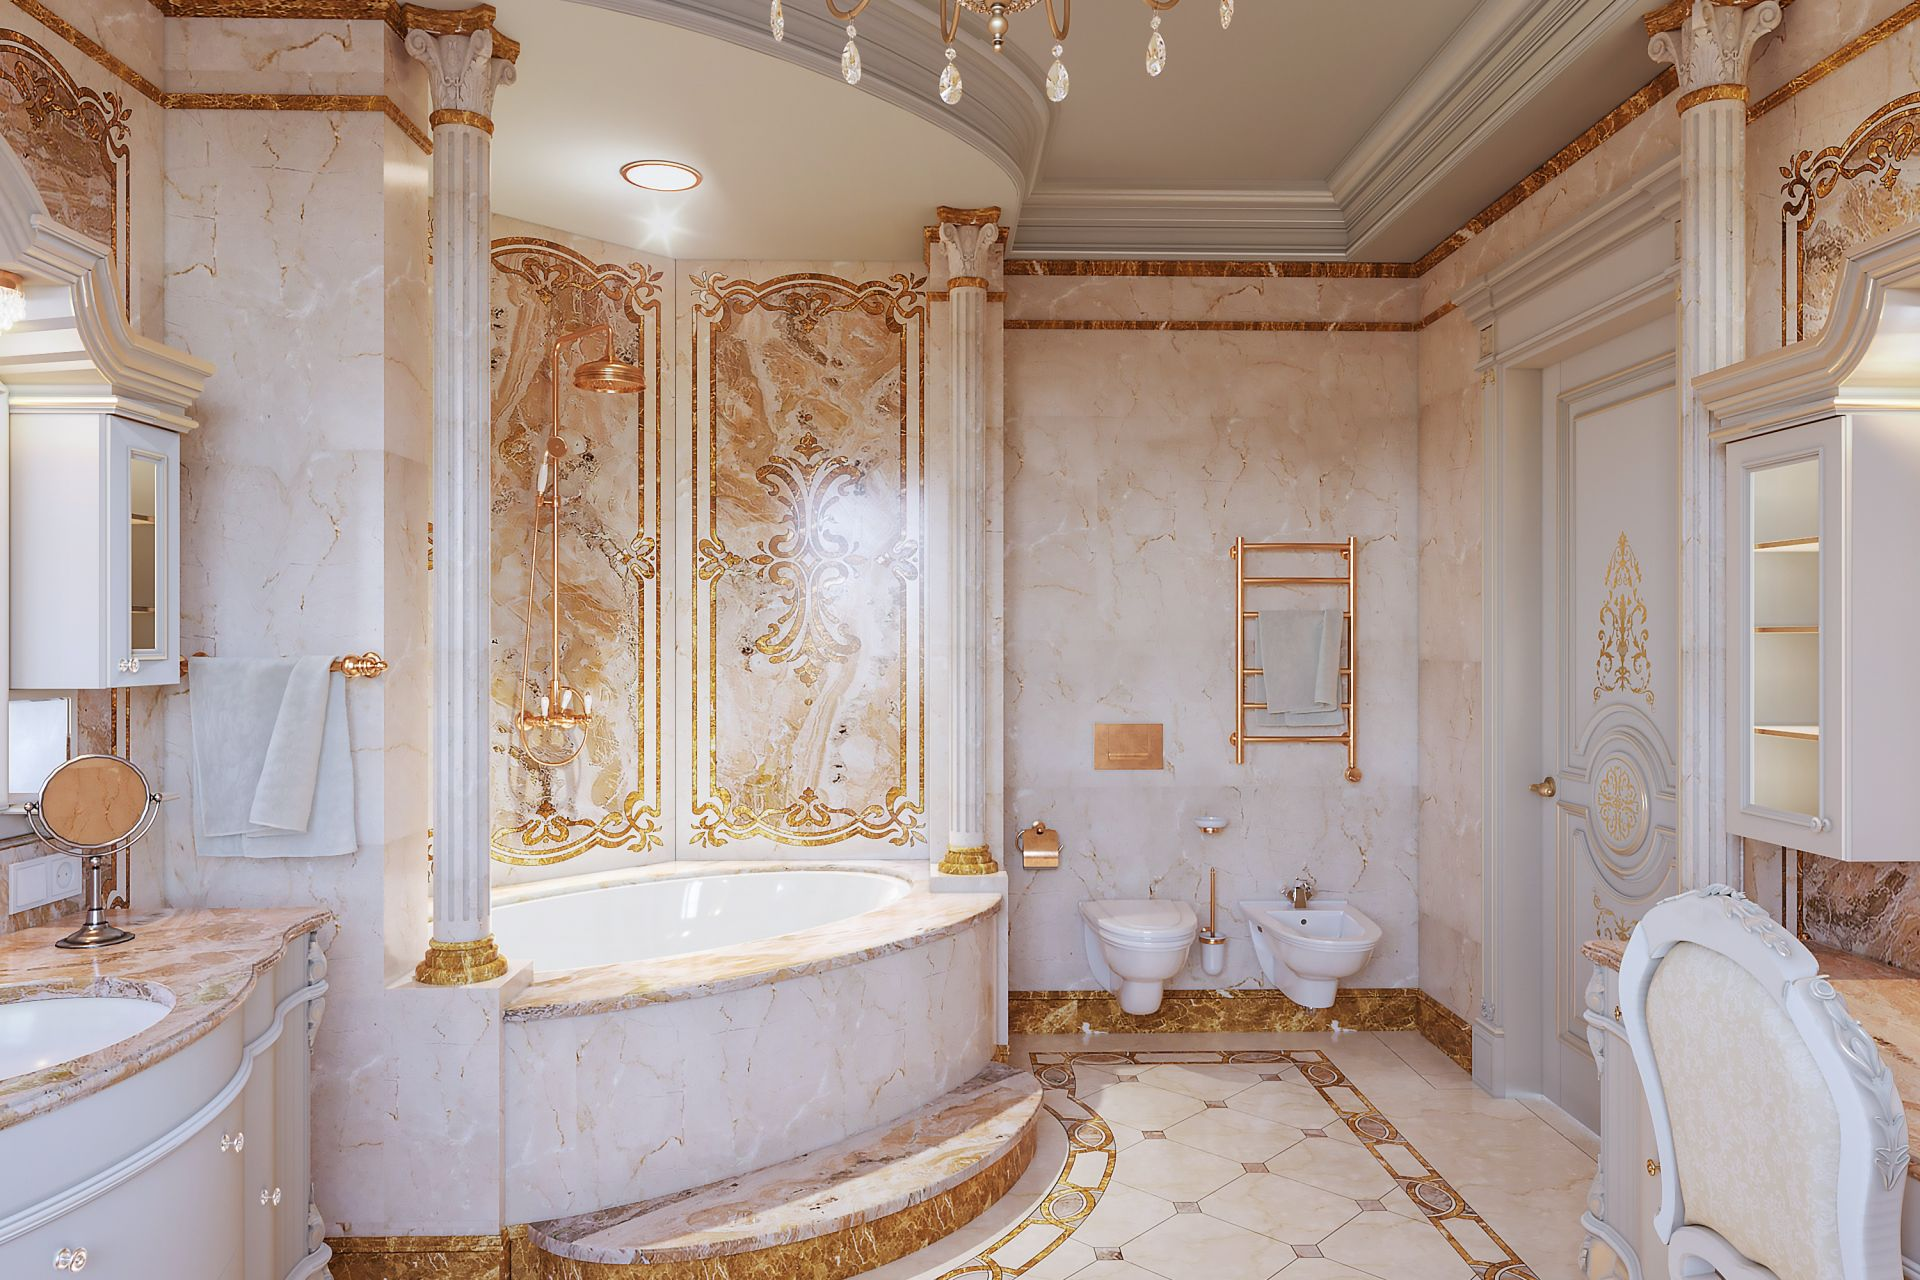 Design project of a luxury bathroom